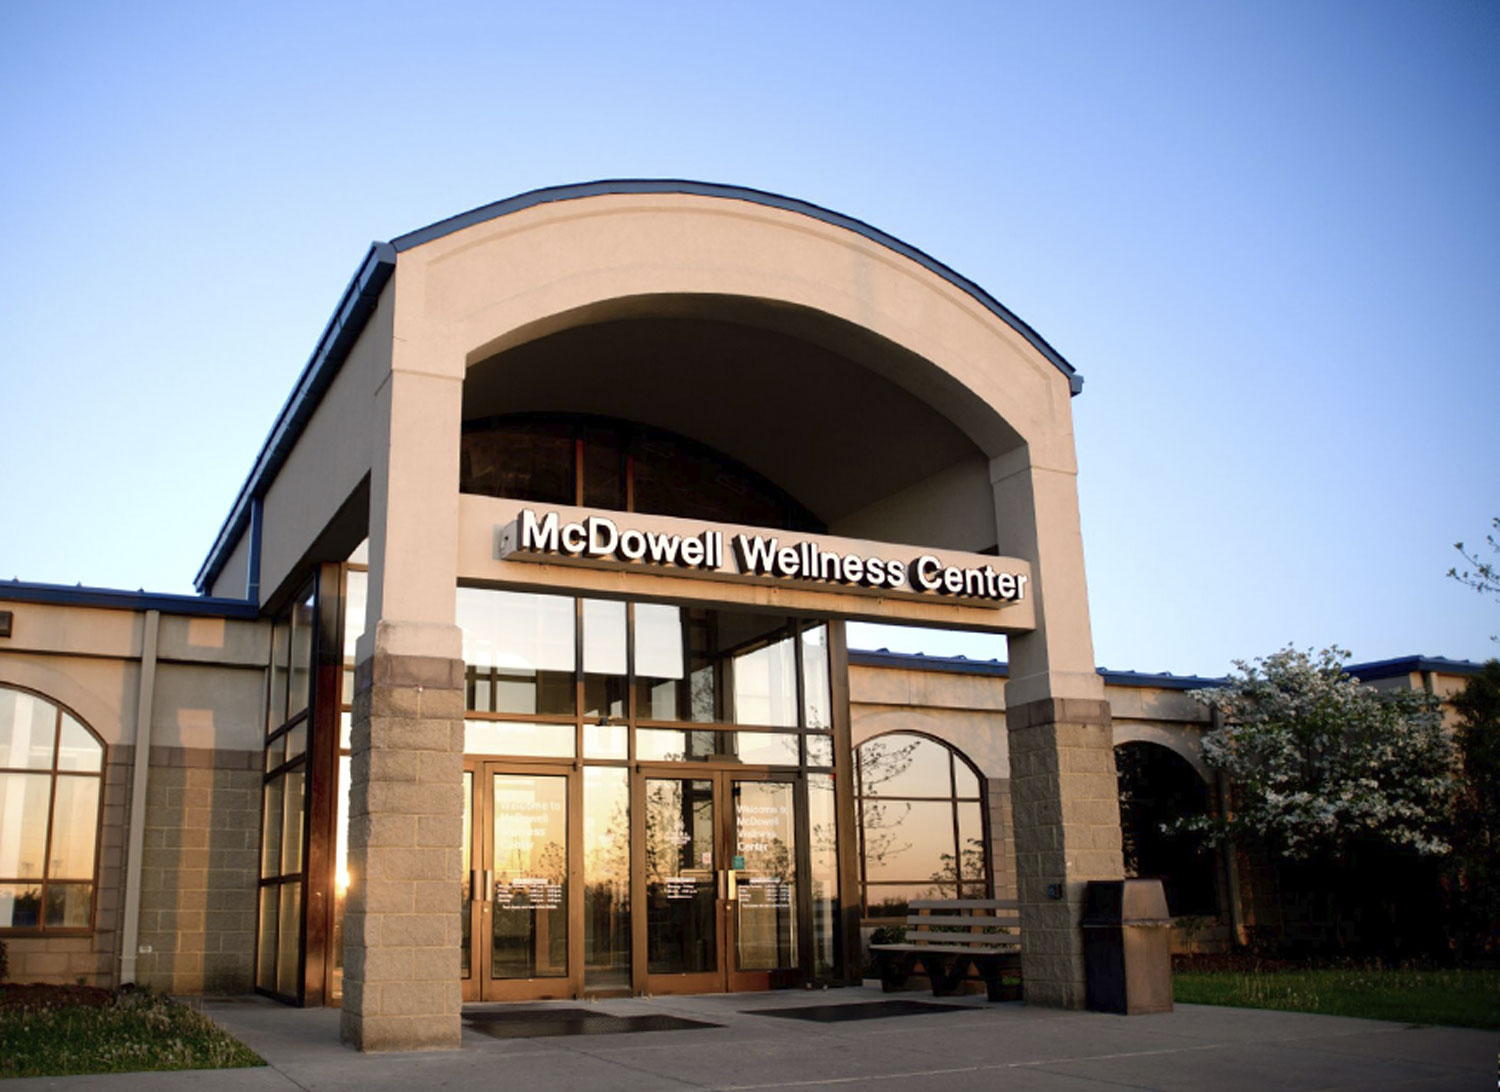 McDowell Wellness Center